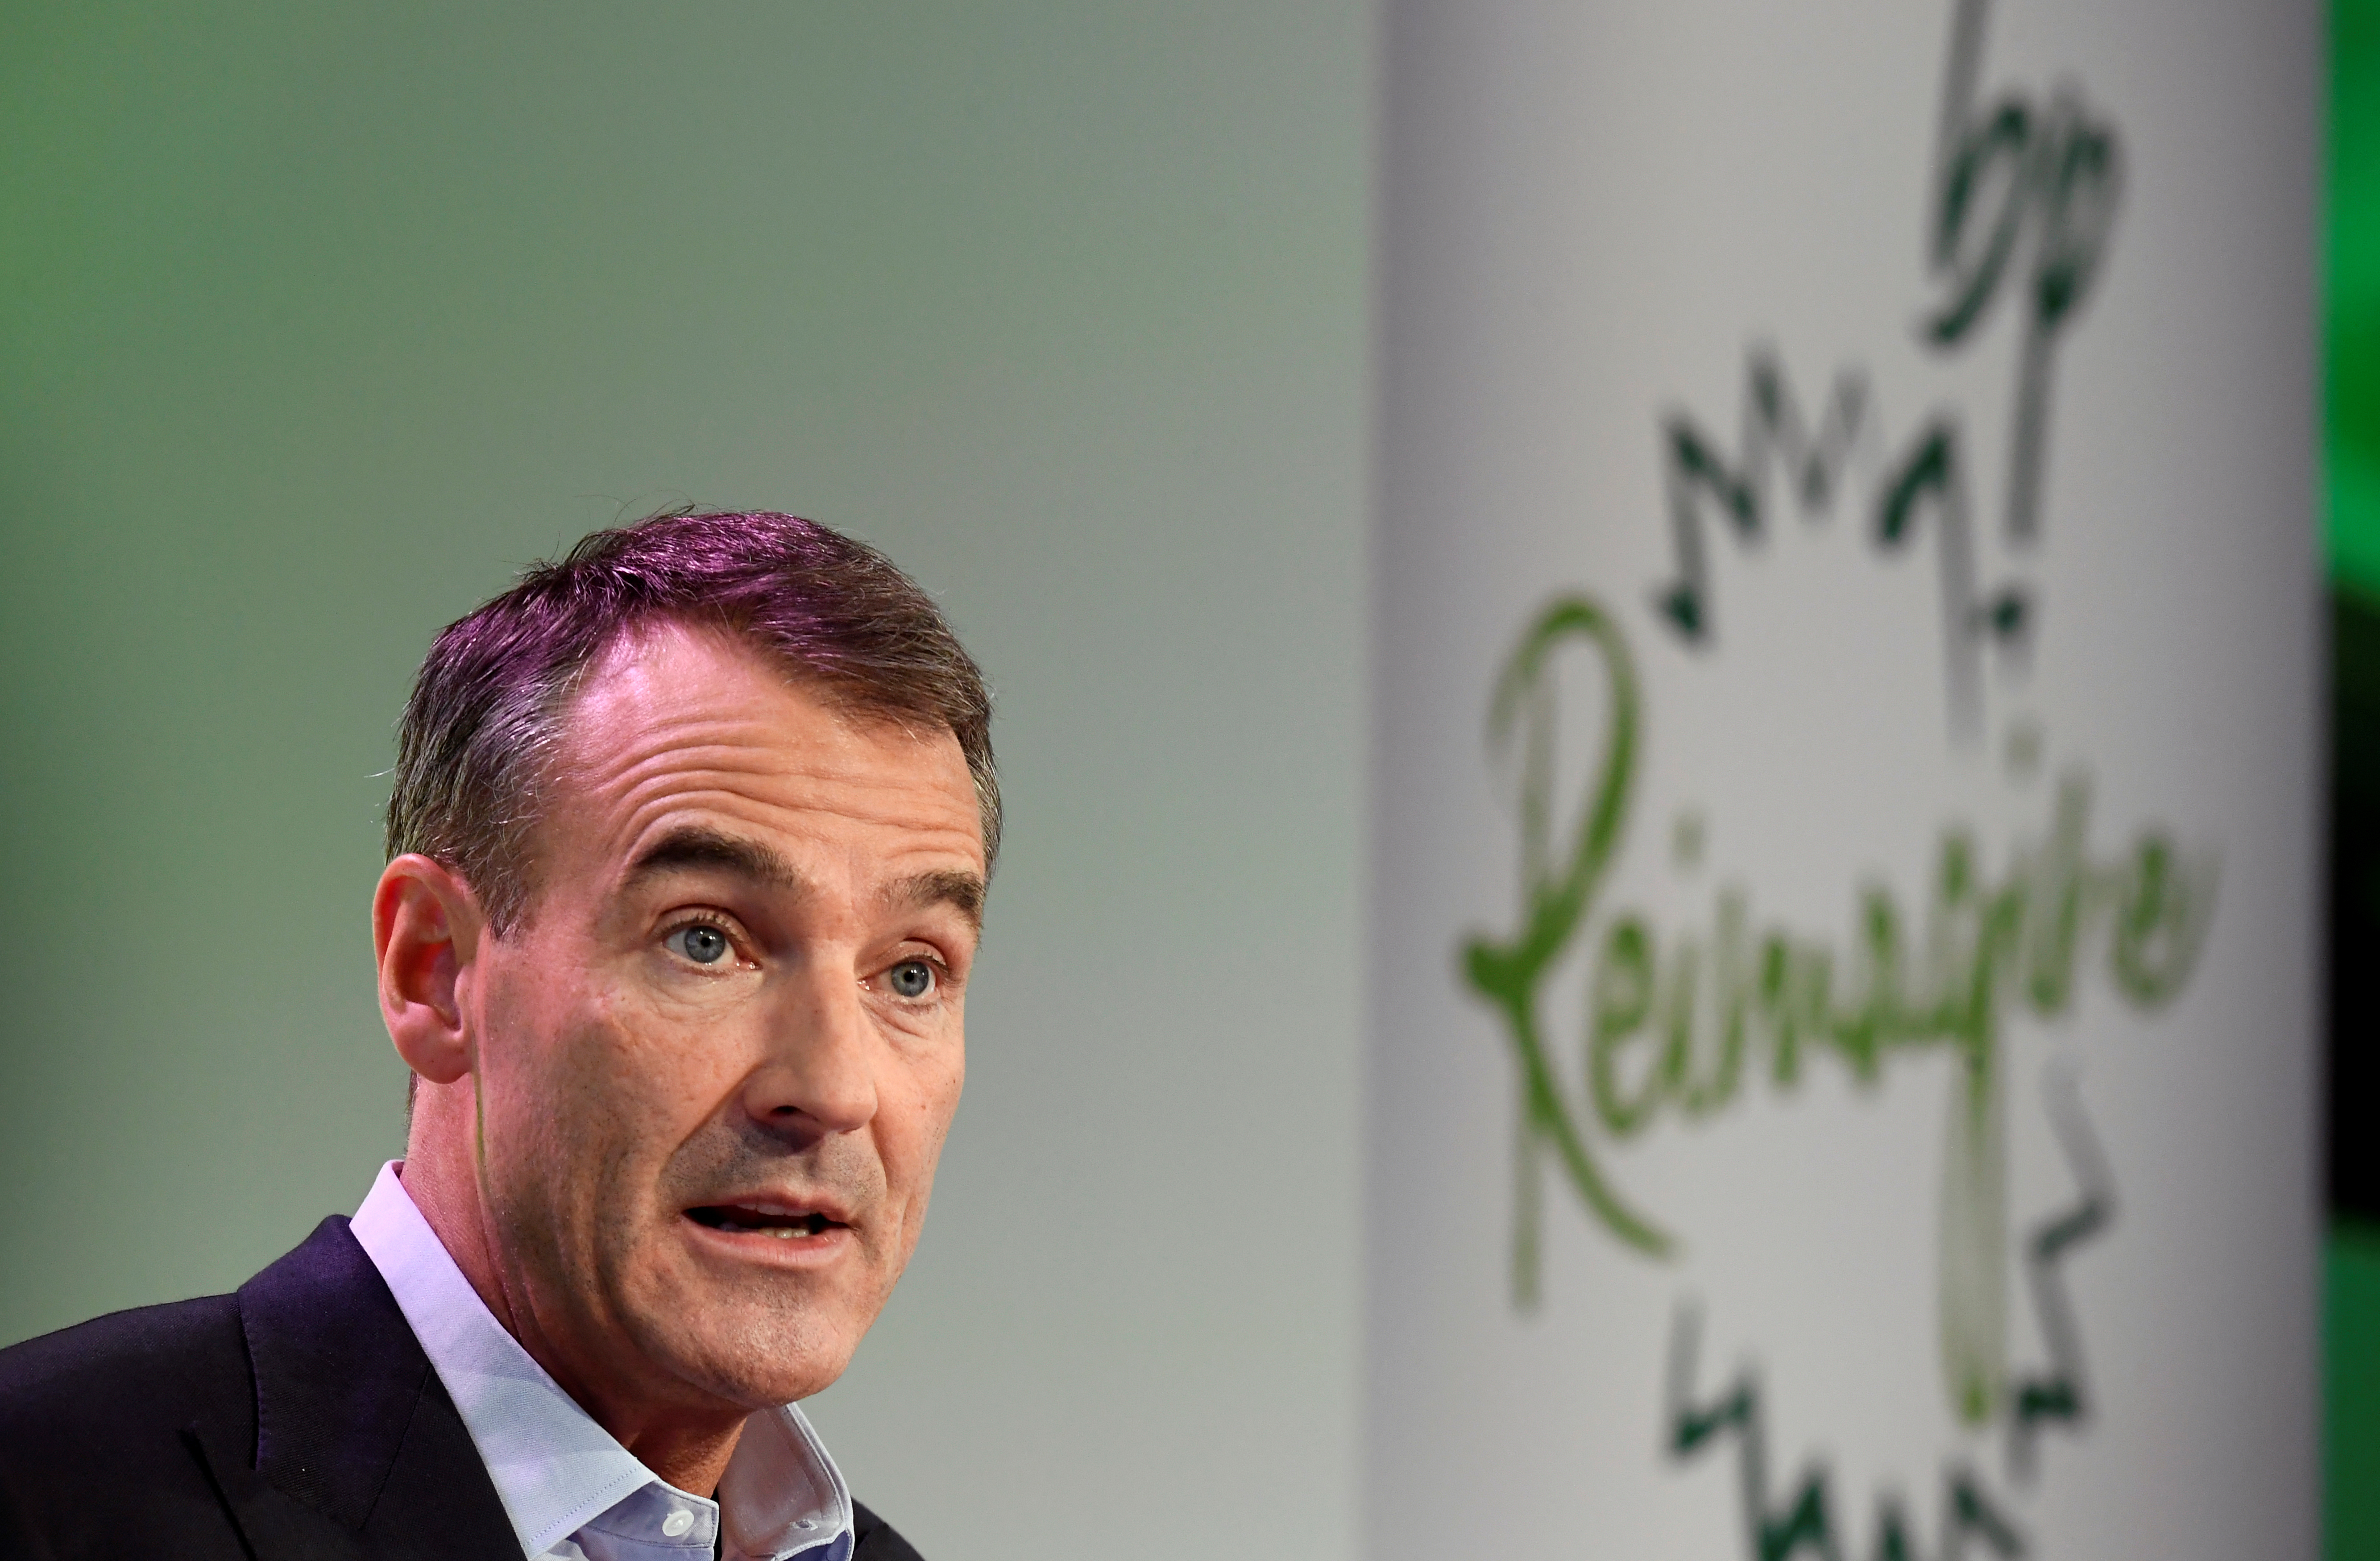 BP Chief Executive Bernard Looney gives a speech in central London, Britain, February 12, 2020. REUTERS/Toby Melville